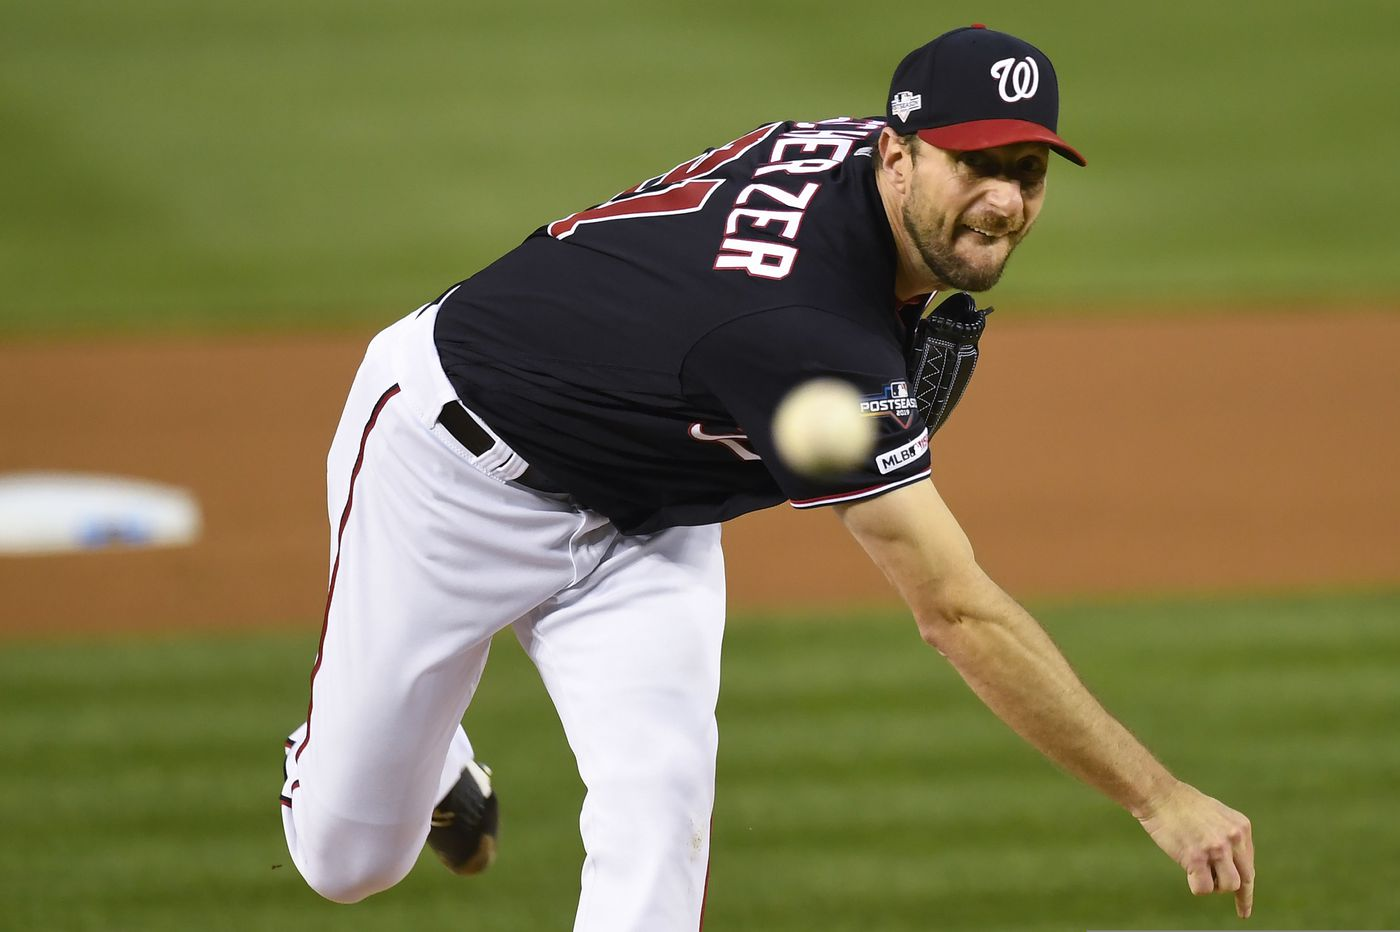 Sports betting: Vegas Vic has some props for Max Scherzer and the Nationals in Game 7